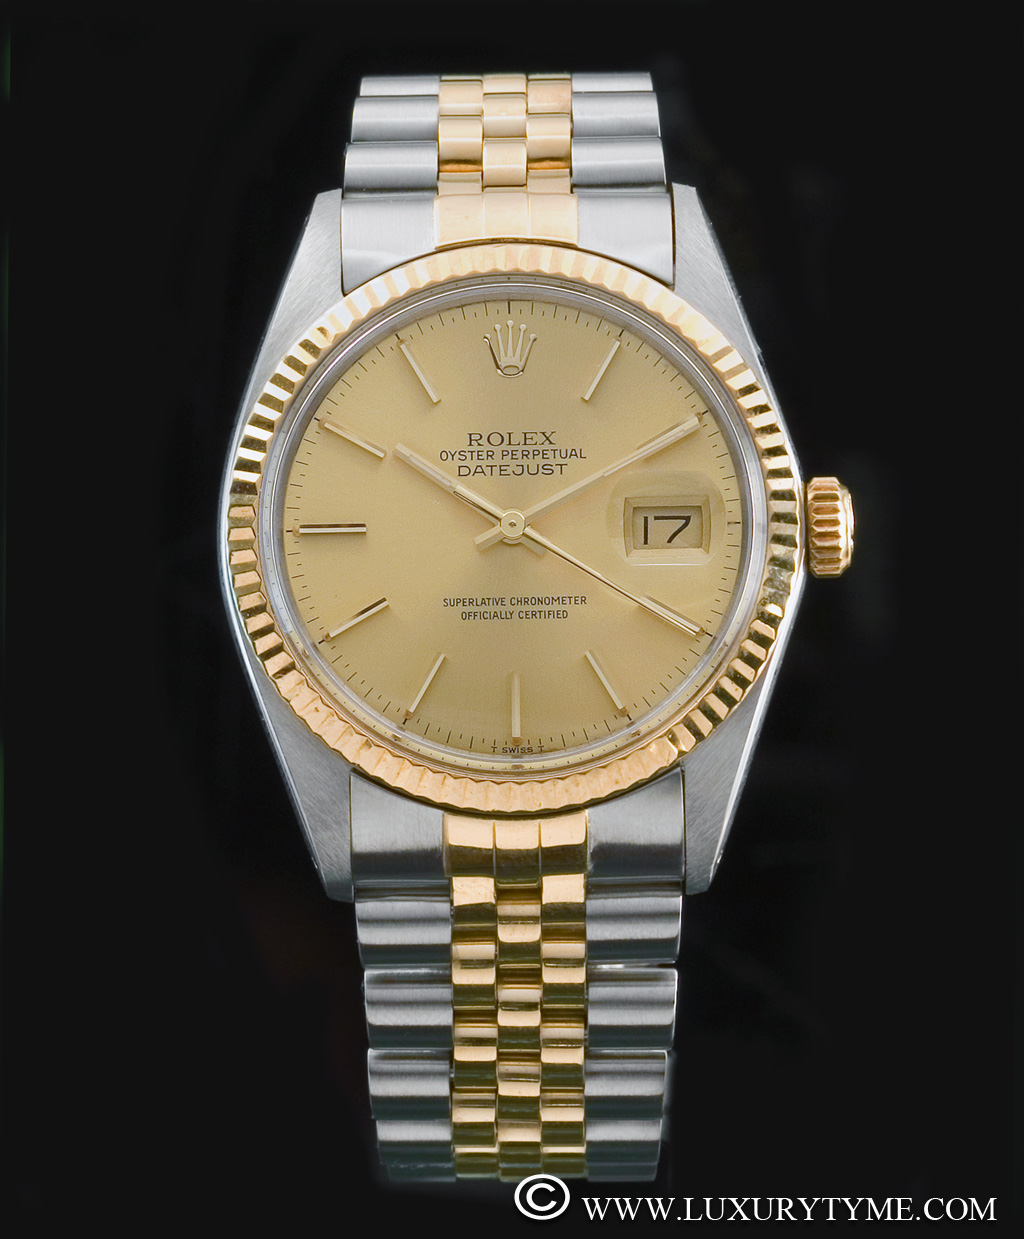 vintage rolex oyster perpetual datejust superlative chronometer officially certified